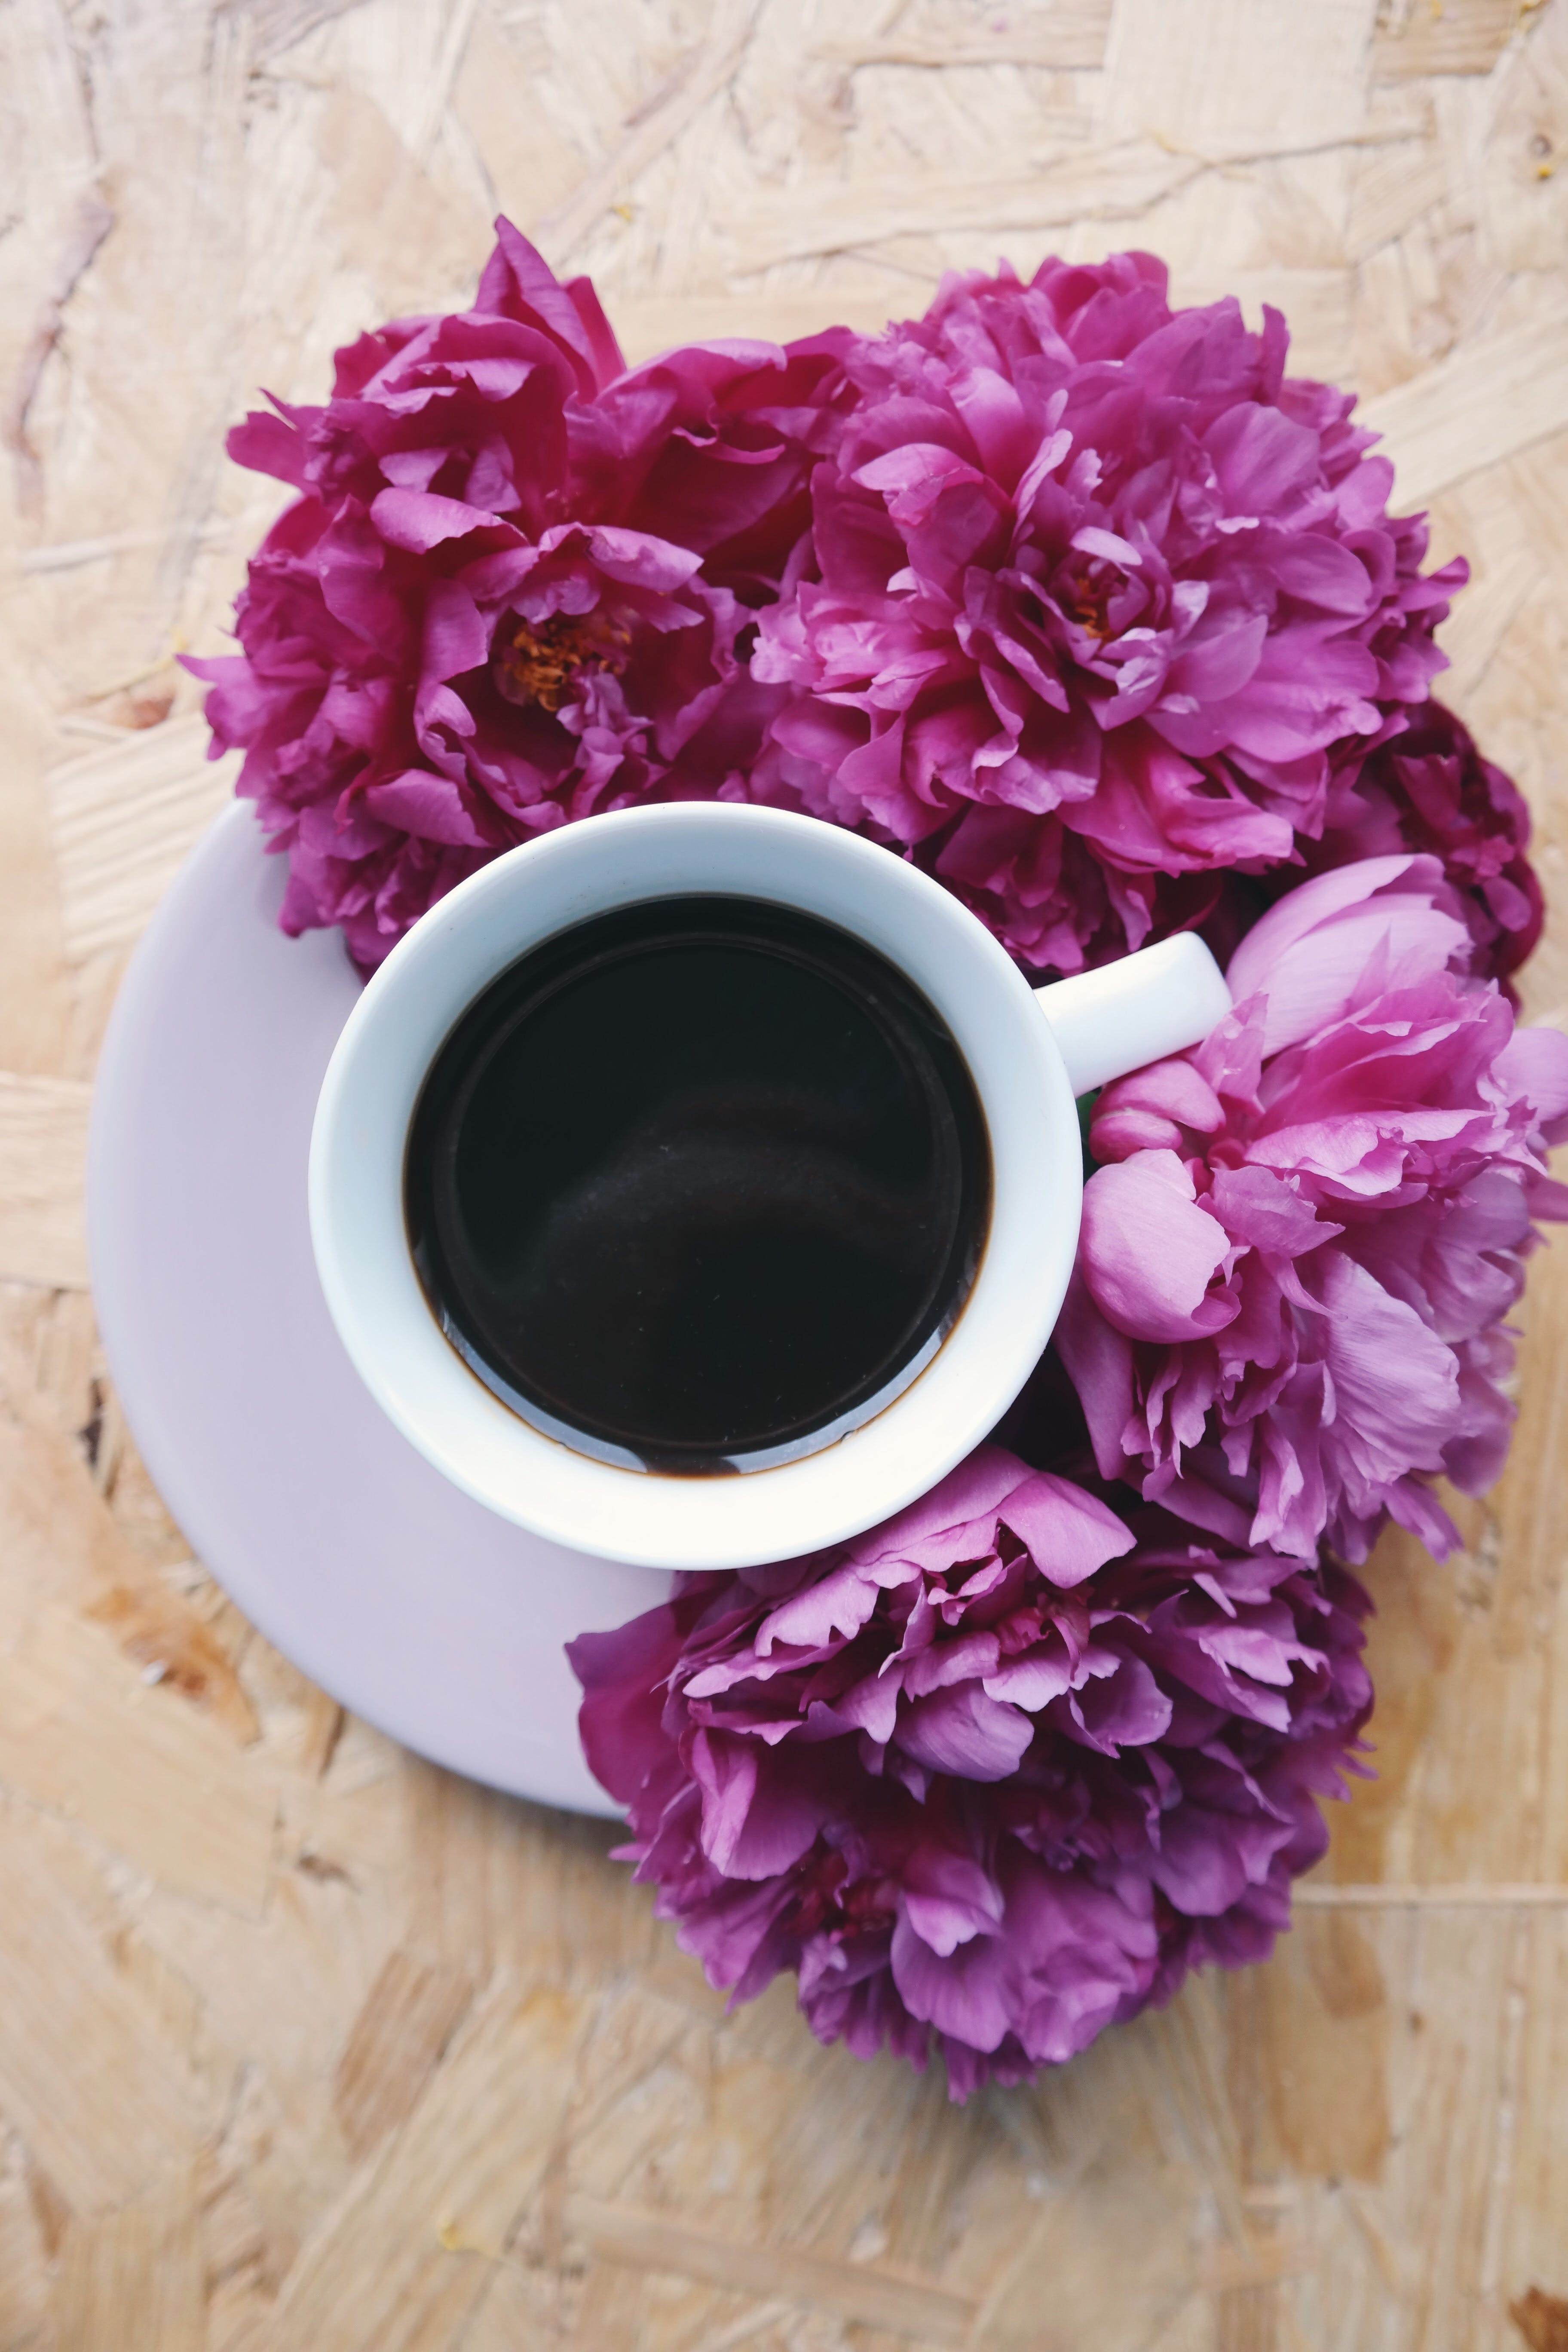 Cup of Coffee Beside Flowers